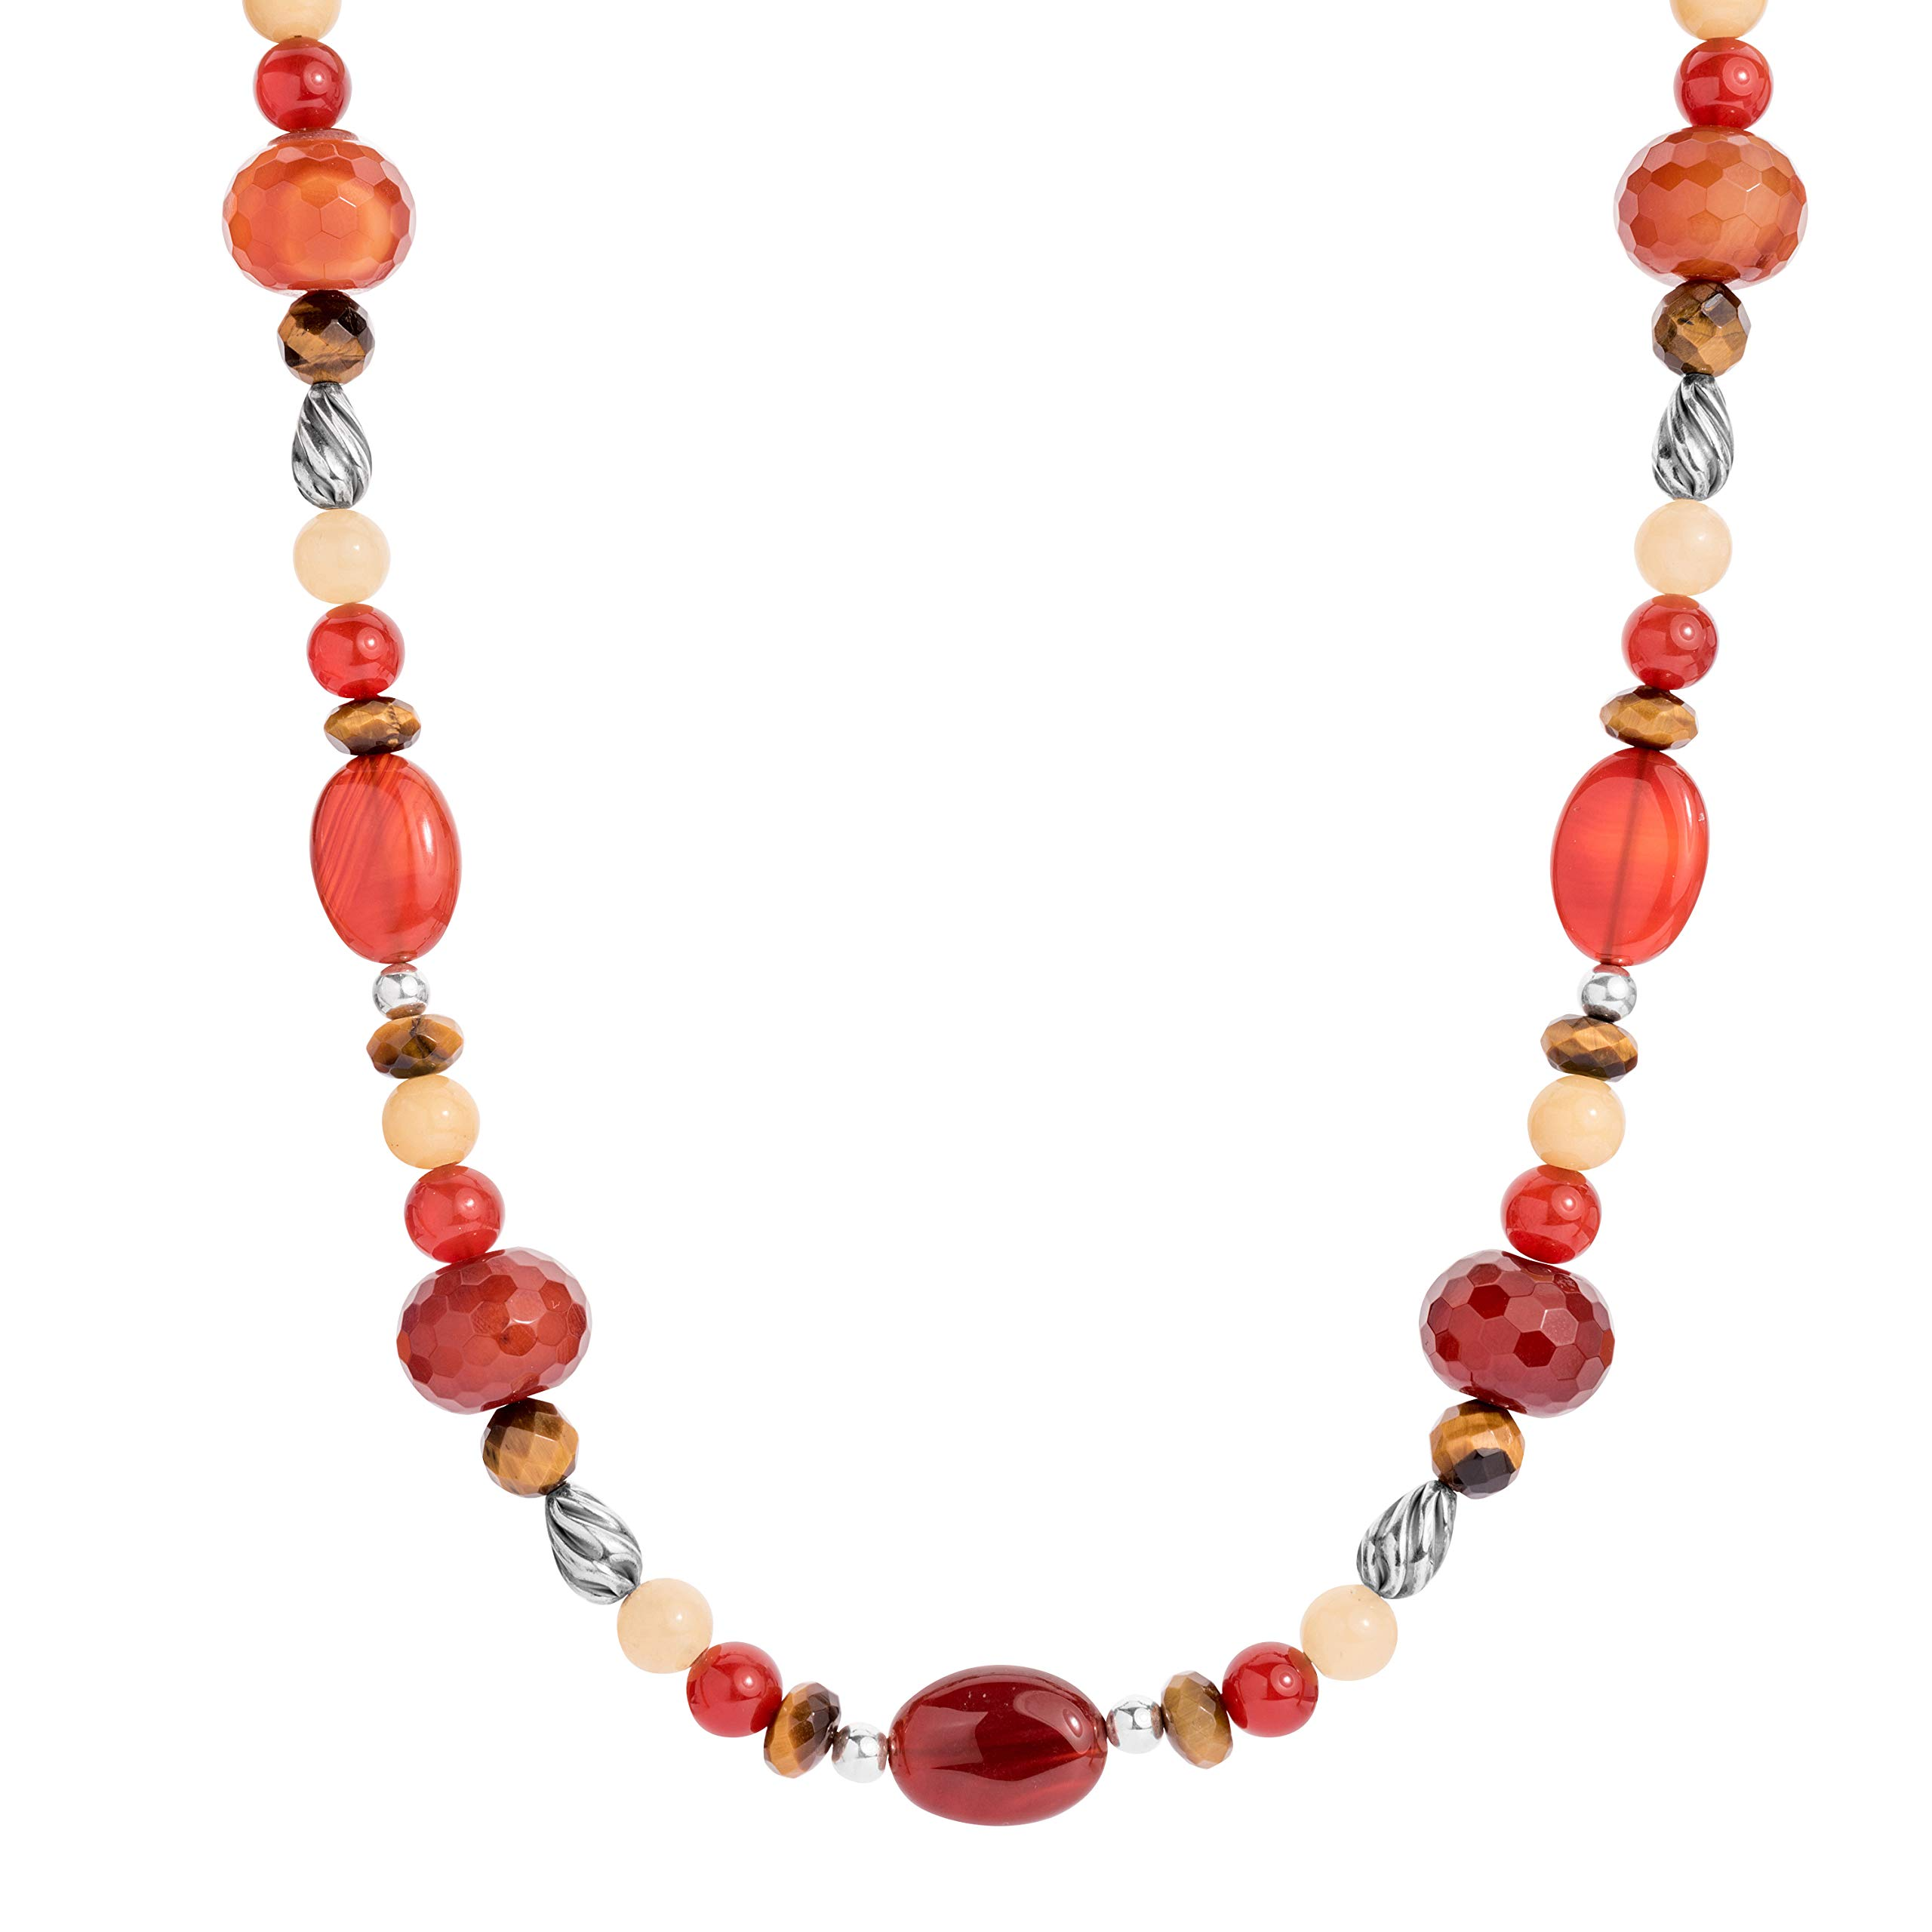 American West Sterling Silver Orange Carnelian, Yellow Citrine, Tiger's Eye and Smokey Quartz Gemstone Beaded Necklace 20 to 23 Inch by American West